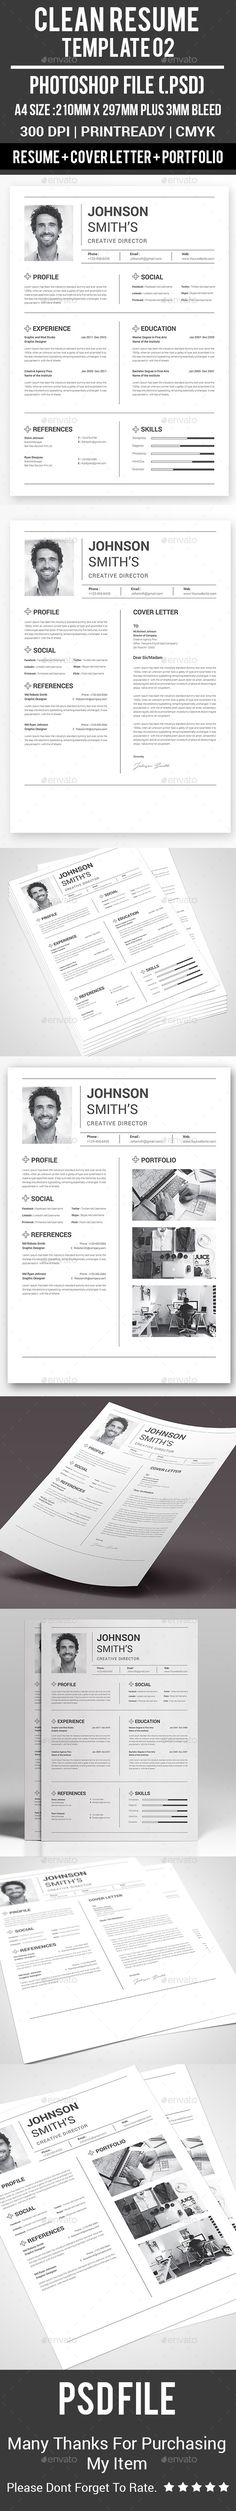 Clean Resume Templates Fonts, Template and Gray - photoshop resume templates